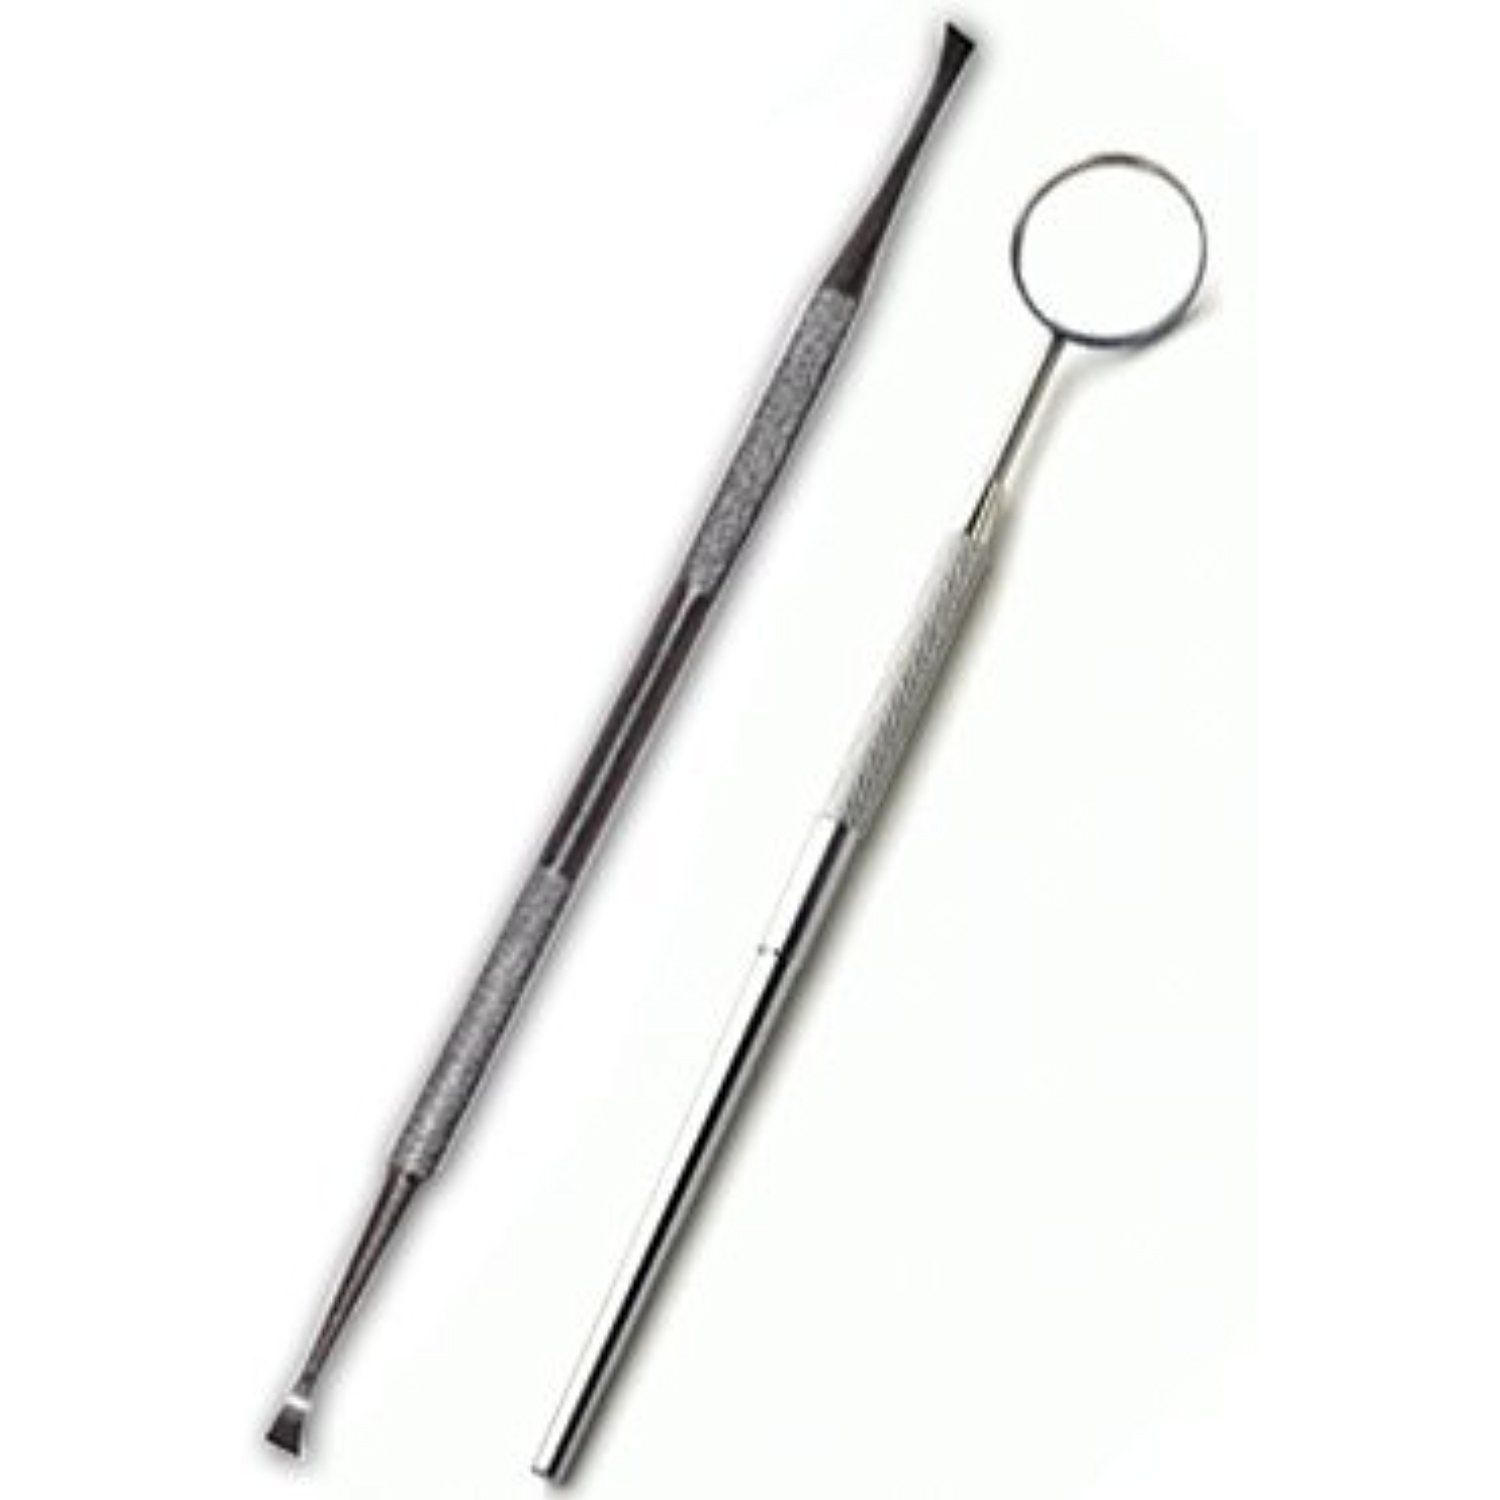 Scaler Size 6 9 10 Long With 4 Mm And A 5 Mm Wide